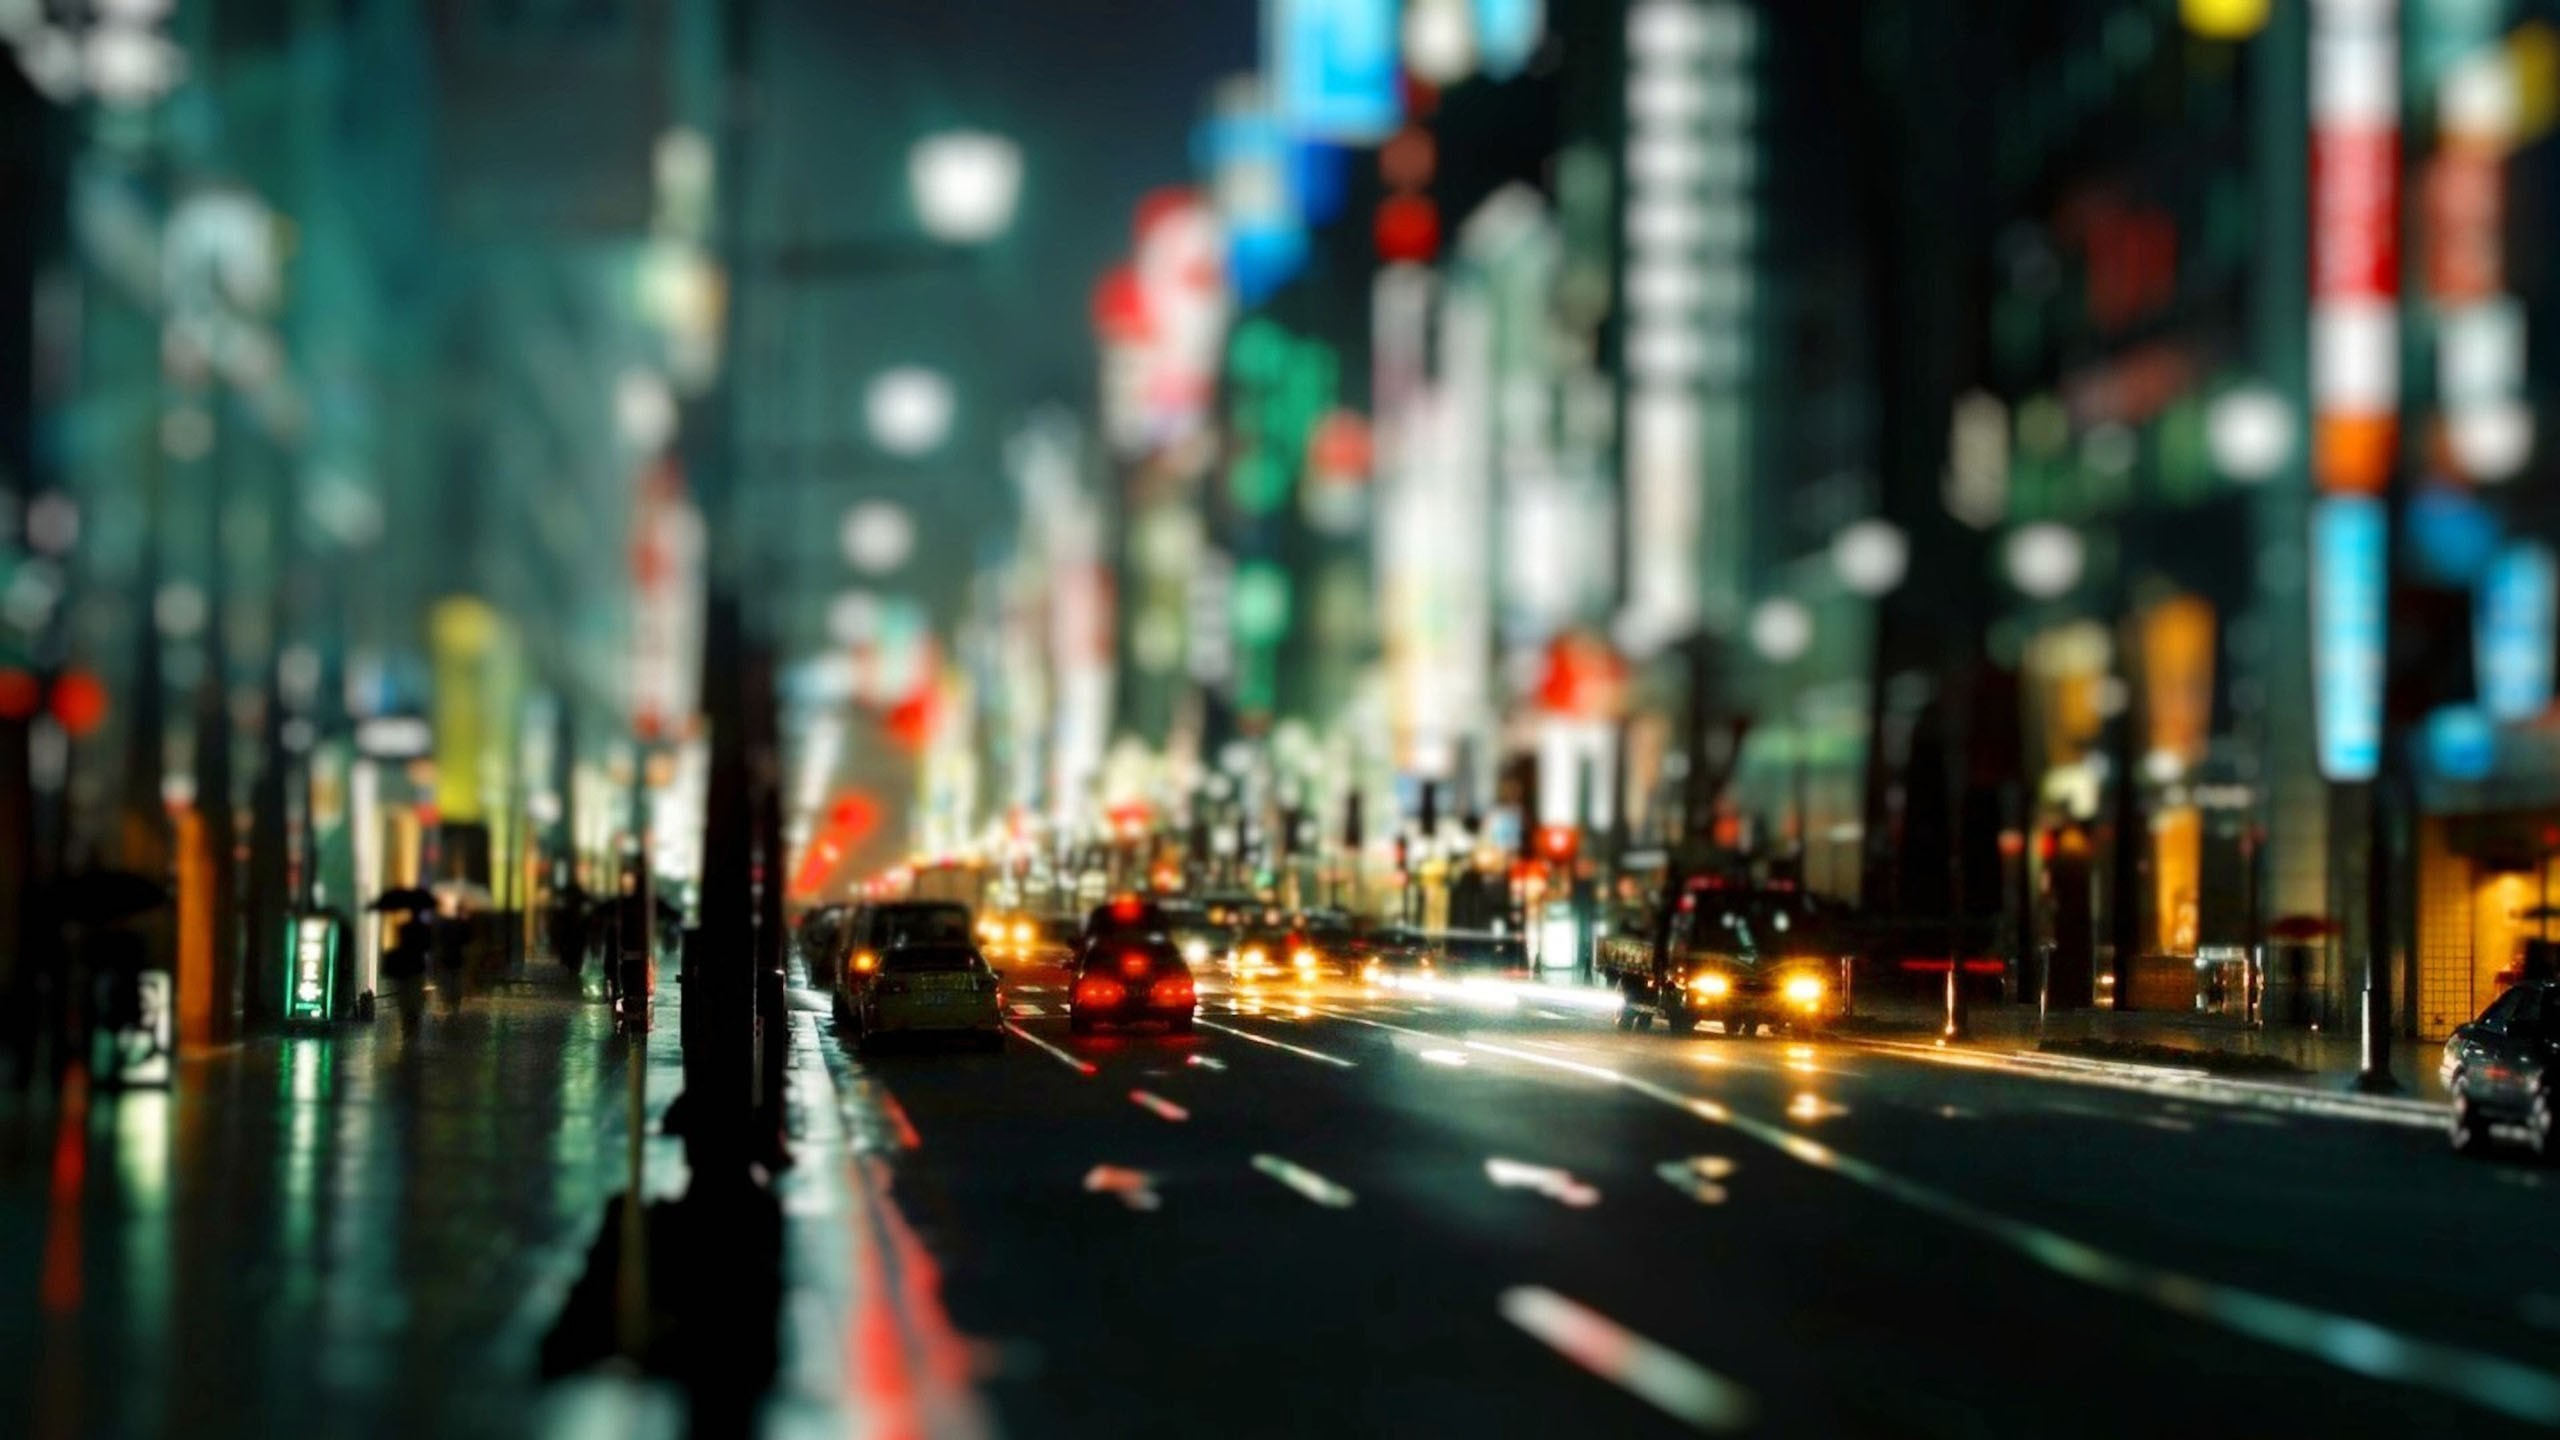 Download Wallpaper Night City Street - bokeh-city-lights-cityscapes-night-streets-2560x1440-wallpaper  You Should Have.jpg